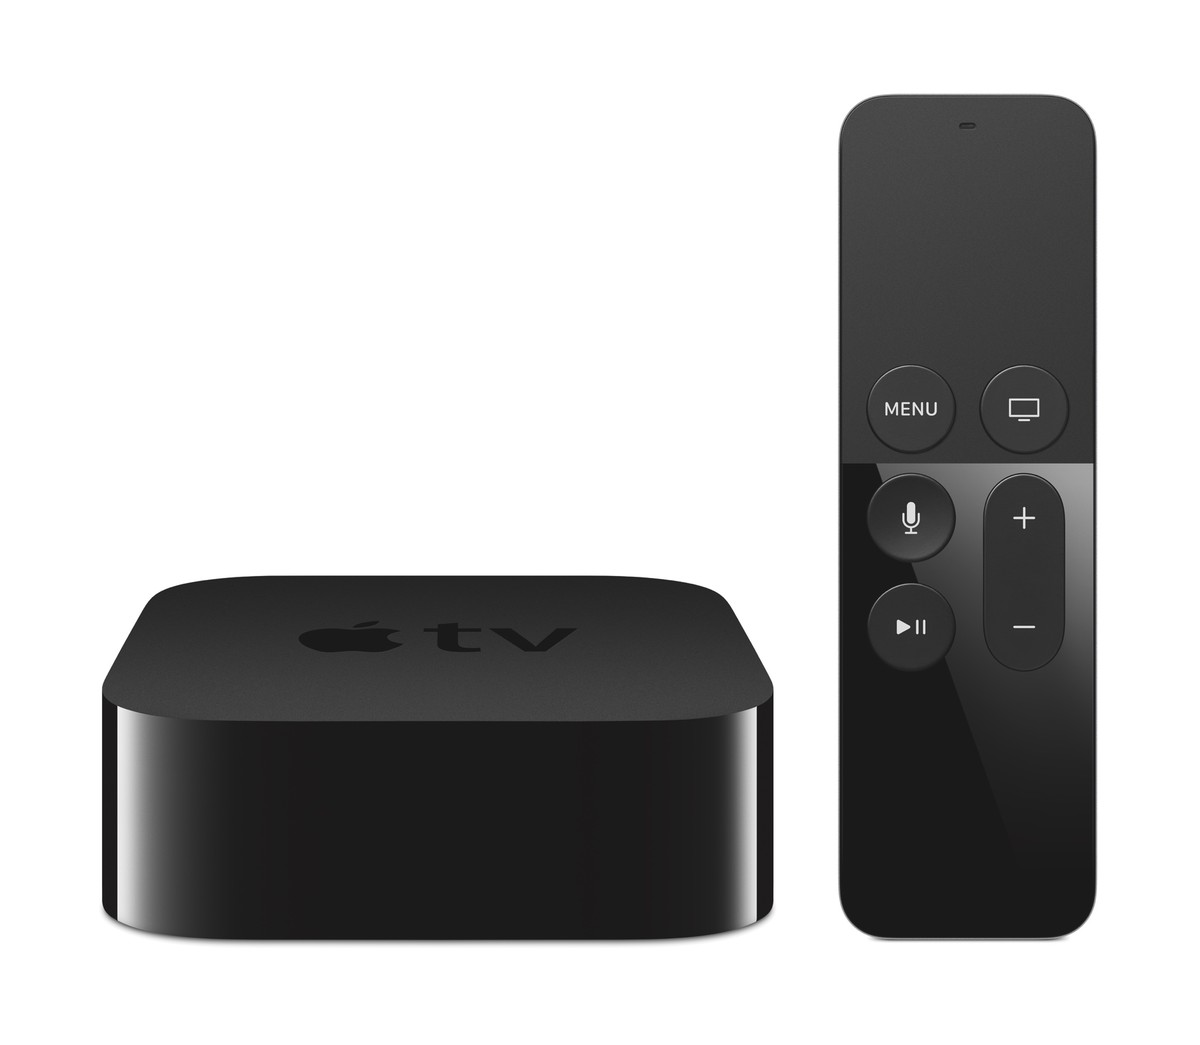 apple tv specs - Chi tiết cấu hình Apple TV